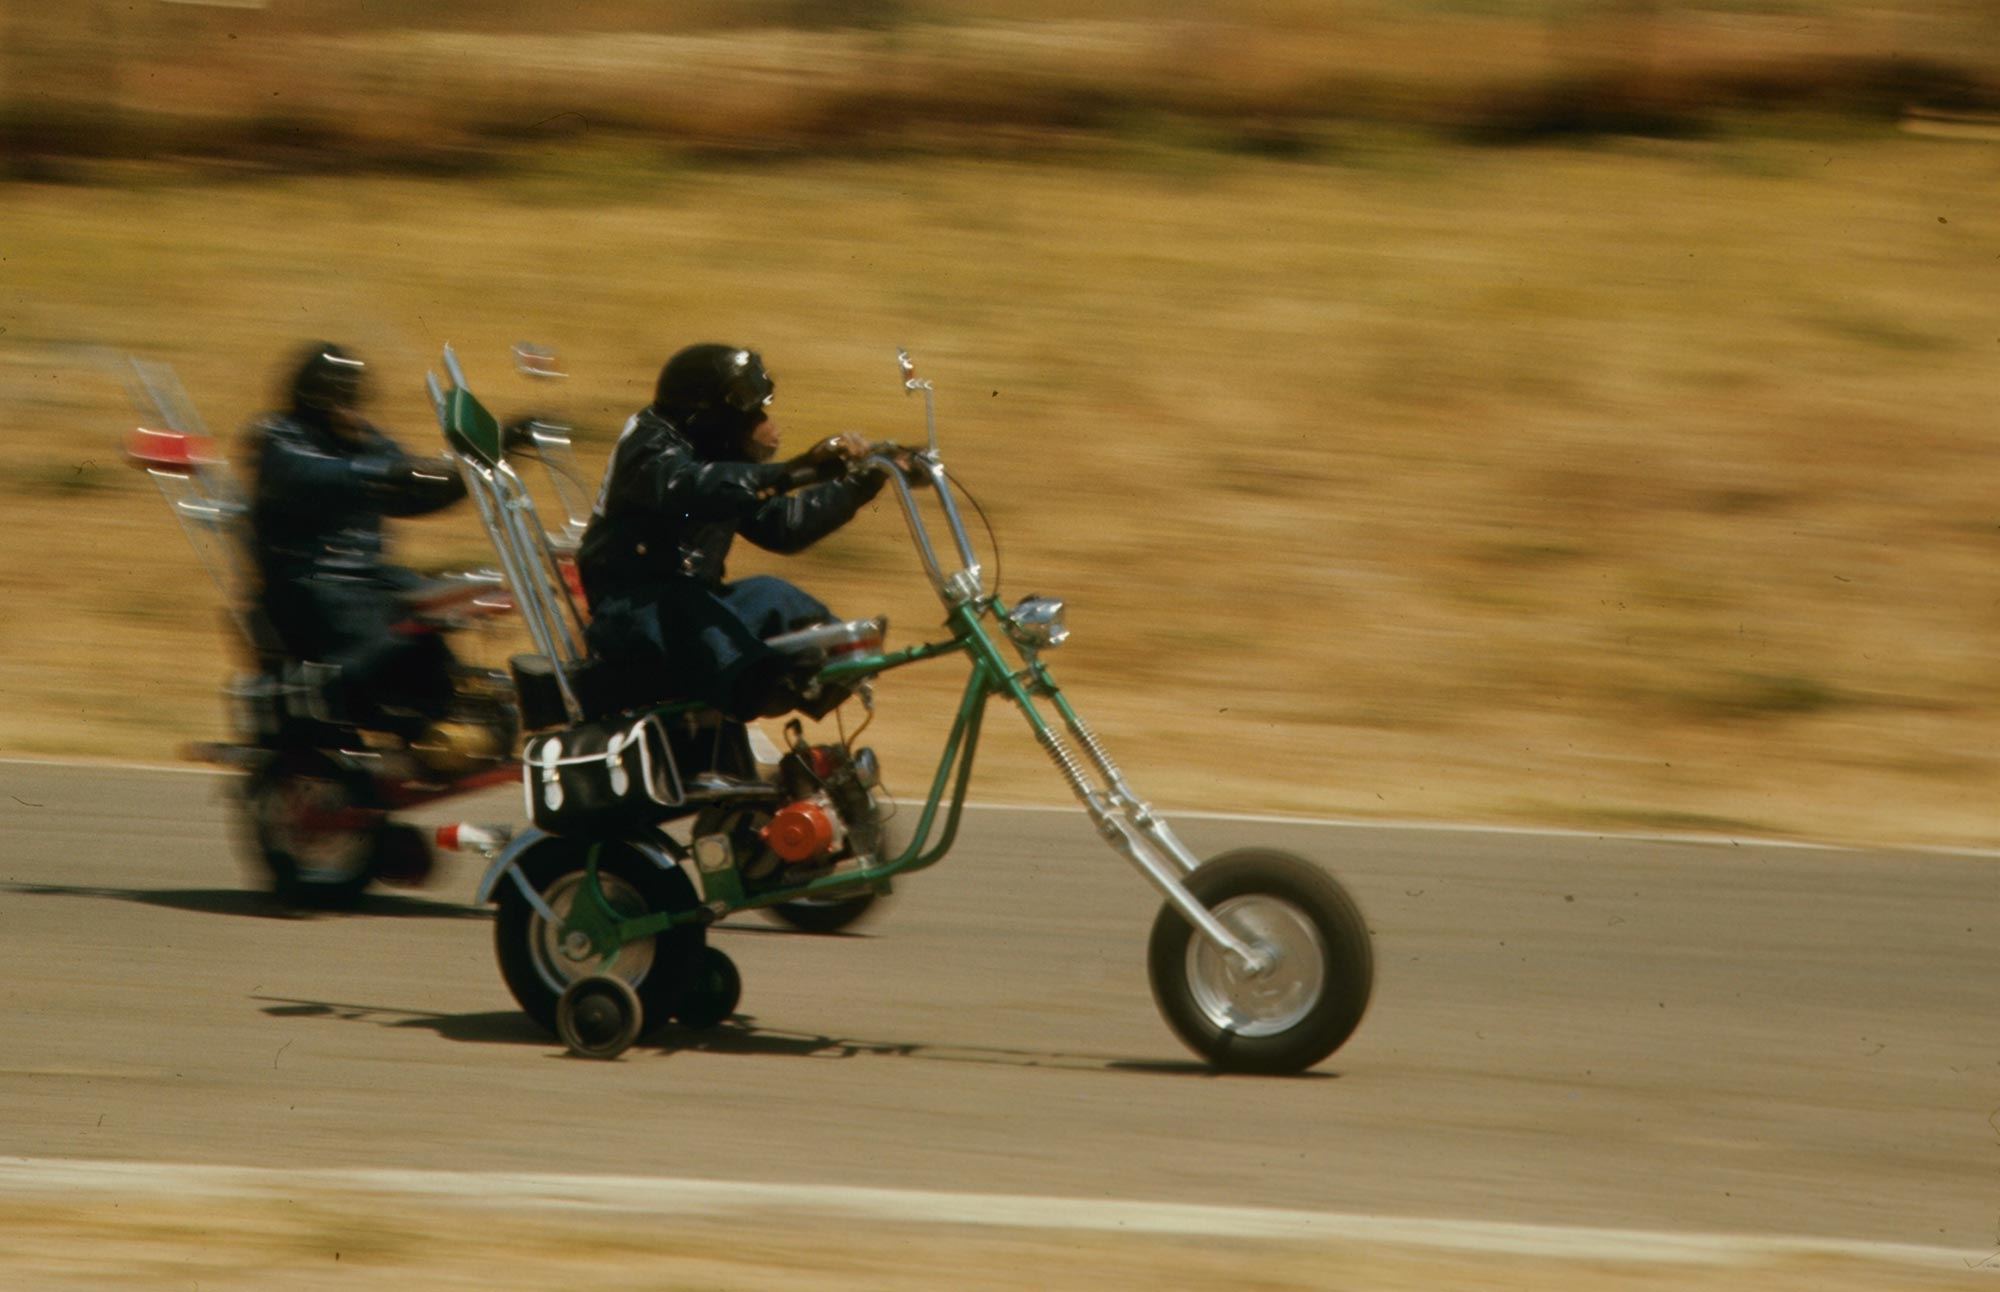 A '70s TV show called Lancelot Link featured chimpanzees riding highly modified minibikes